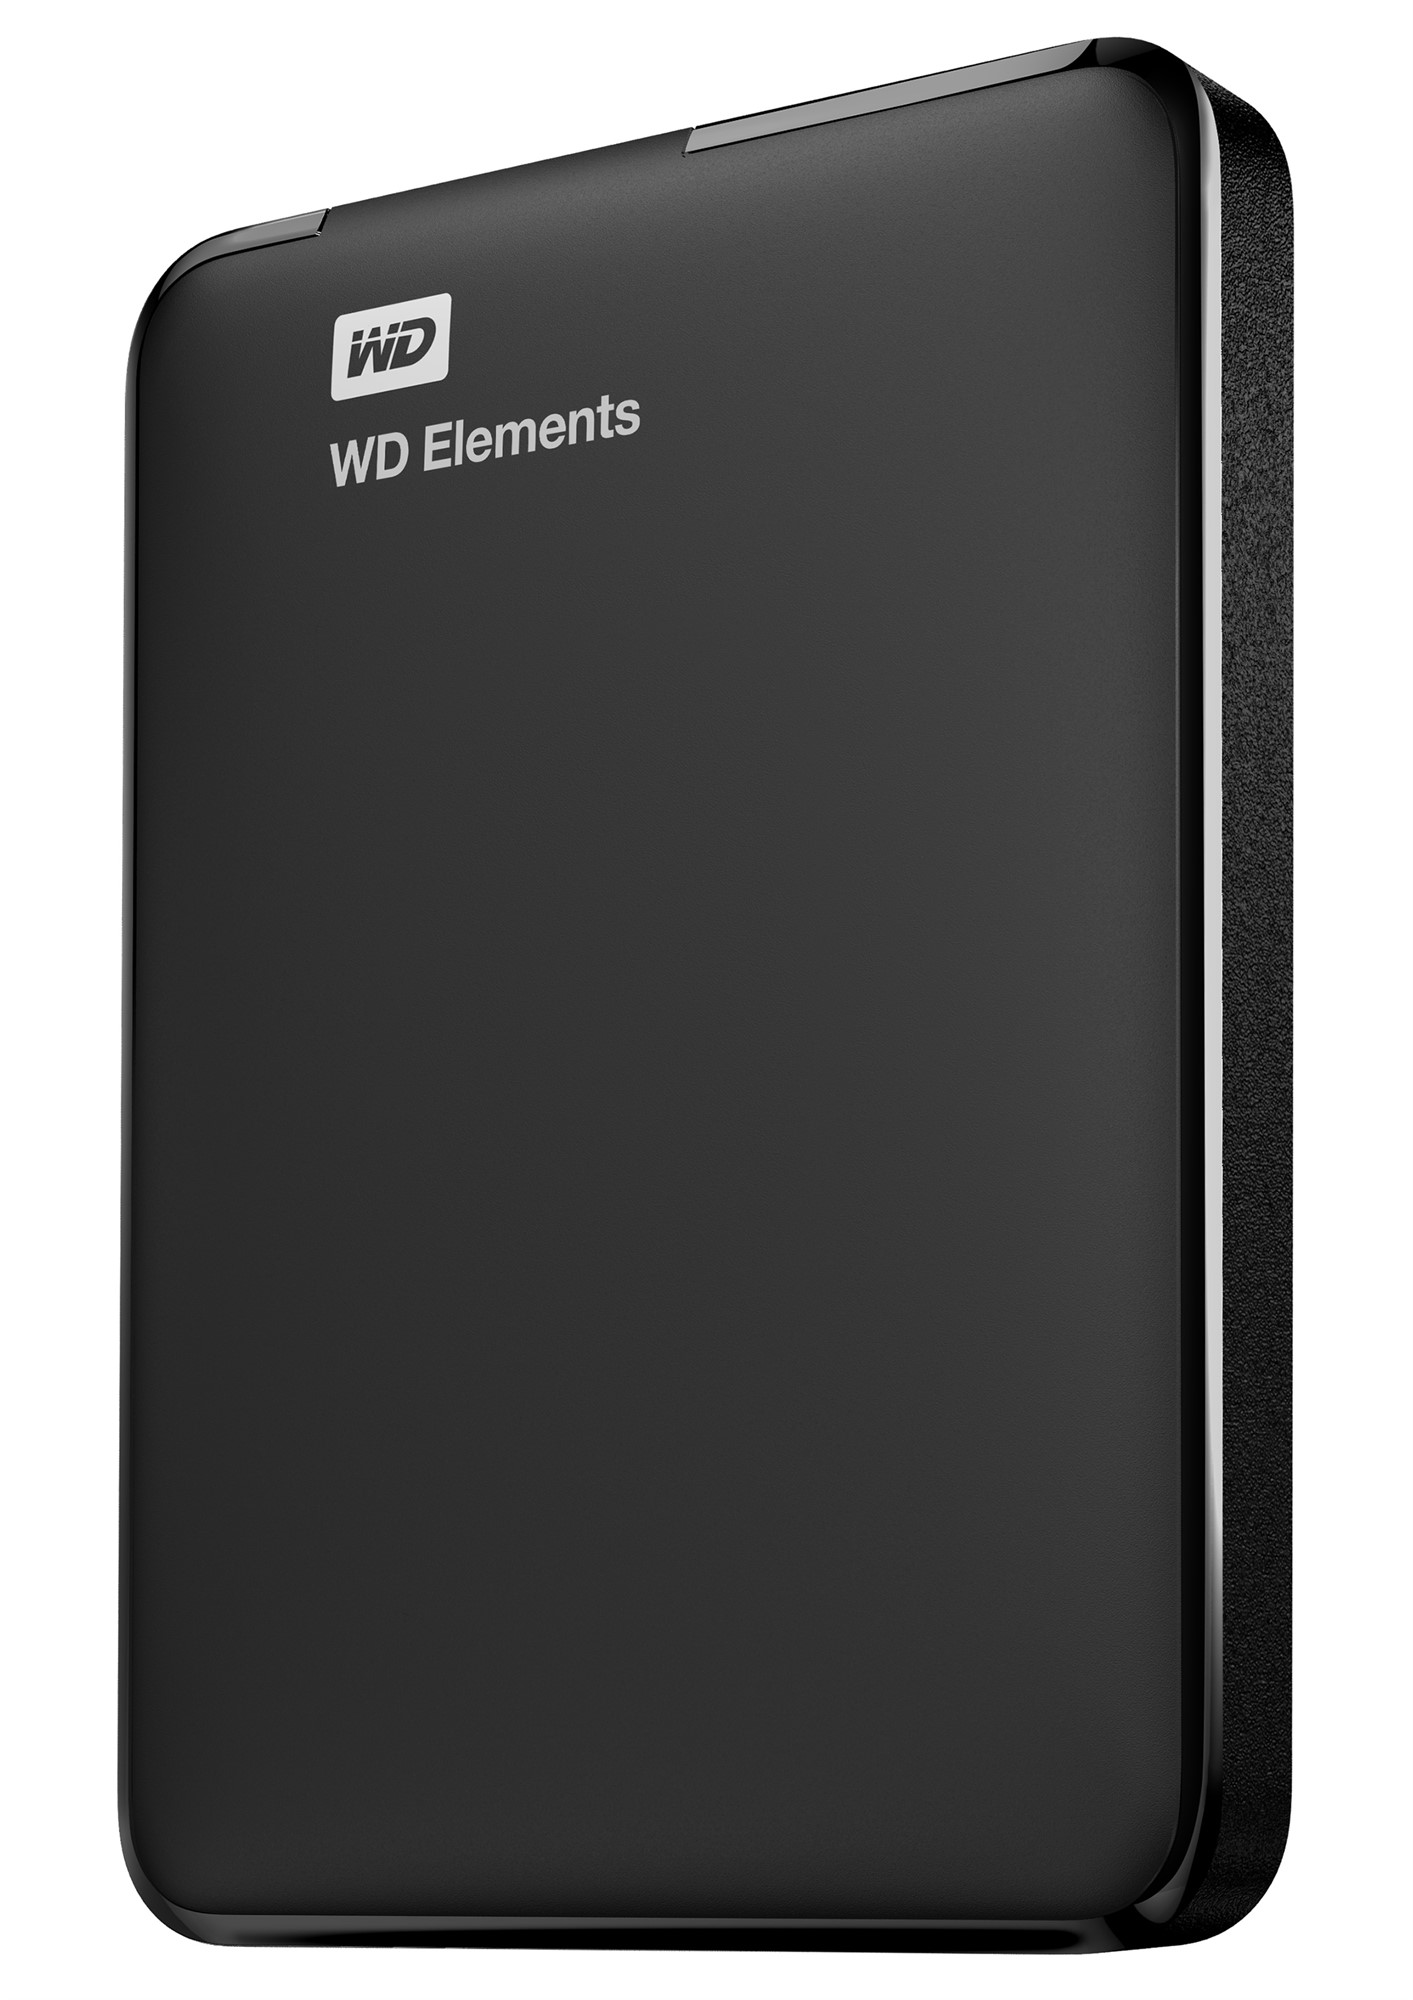 WESTERN DIGITAL WD ELEMENTS PORTABLE 2000GB BLACK EXTERNAL HARD DRIVE